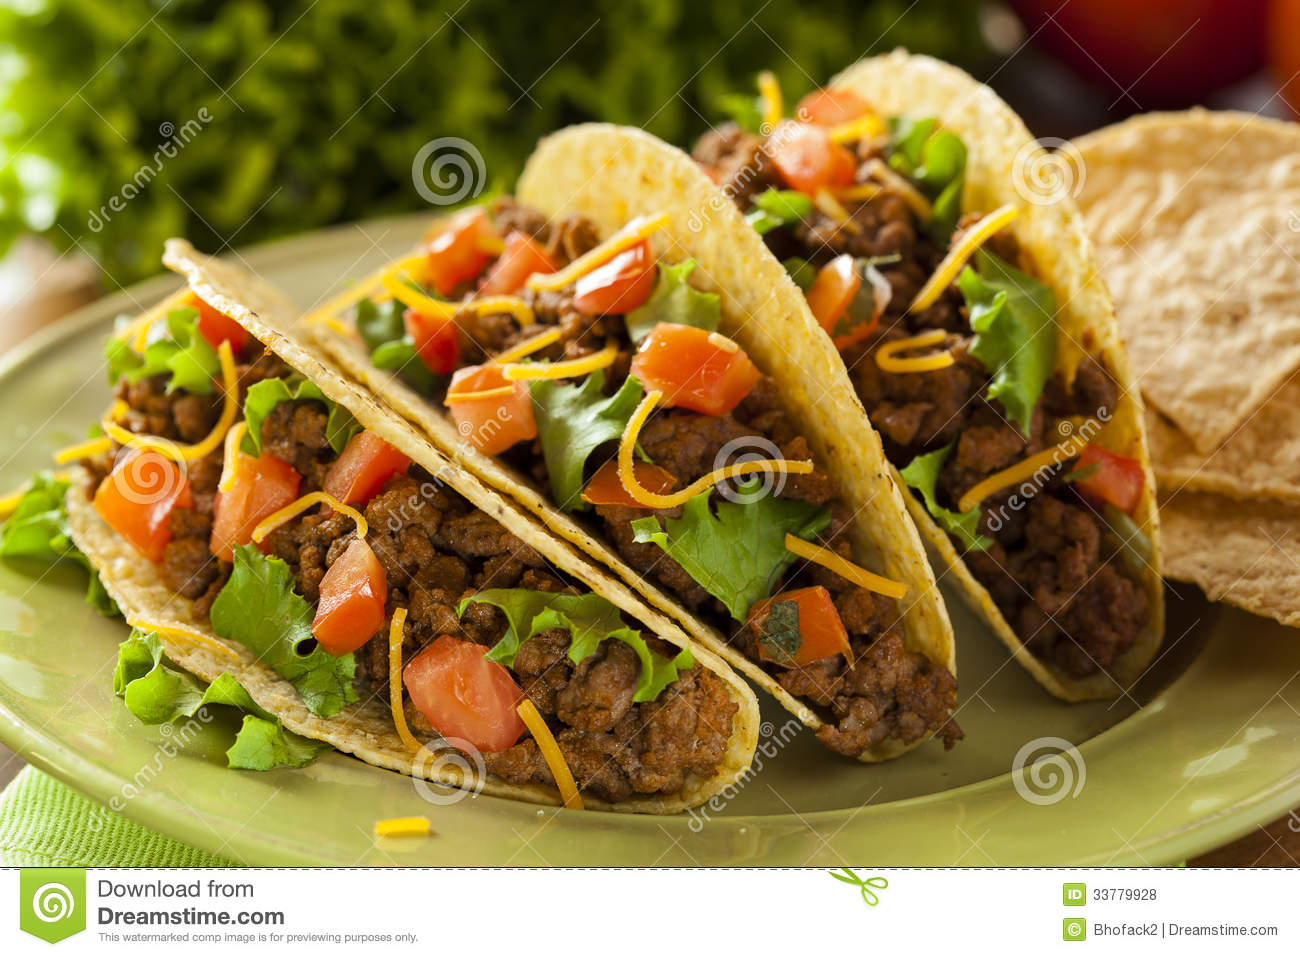 Homemade Ground Beef Tacos Royalty Free Stock Photos - Image: 33779928